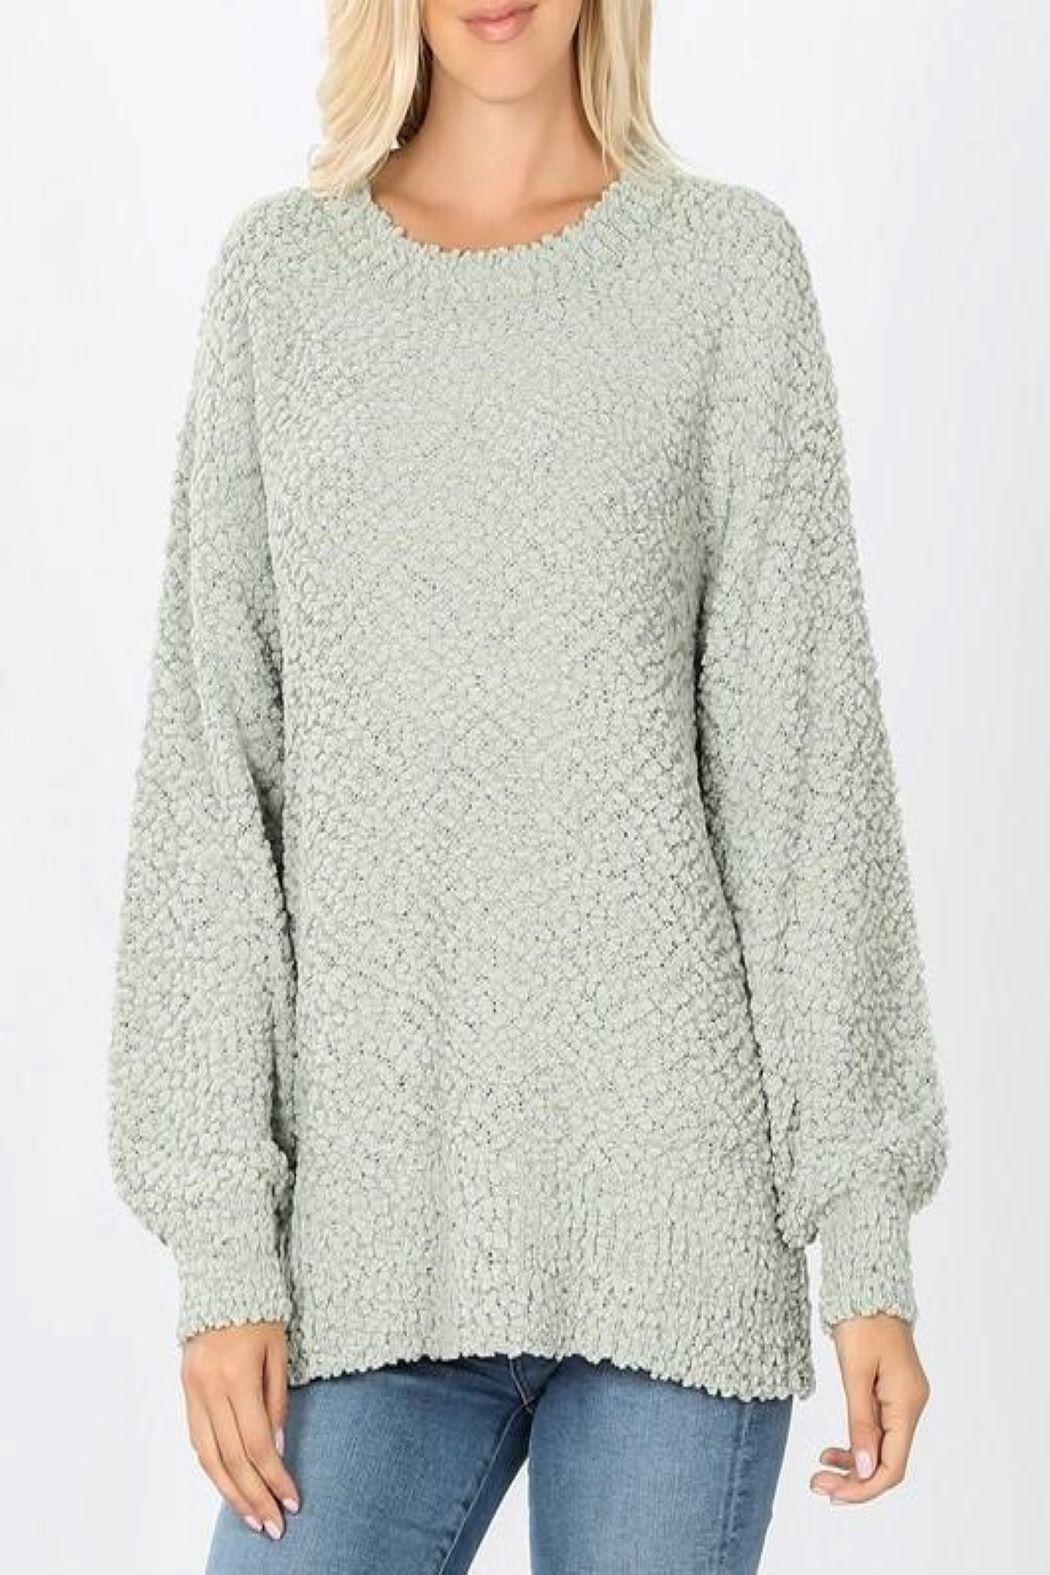 Zenana Popcorn Bubble Sweater - Front Cropped Image